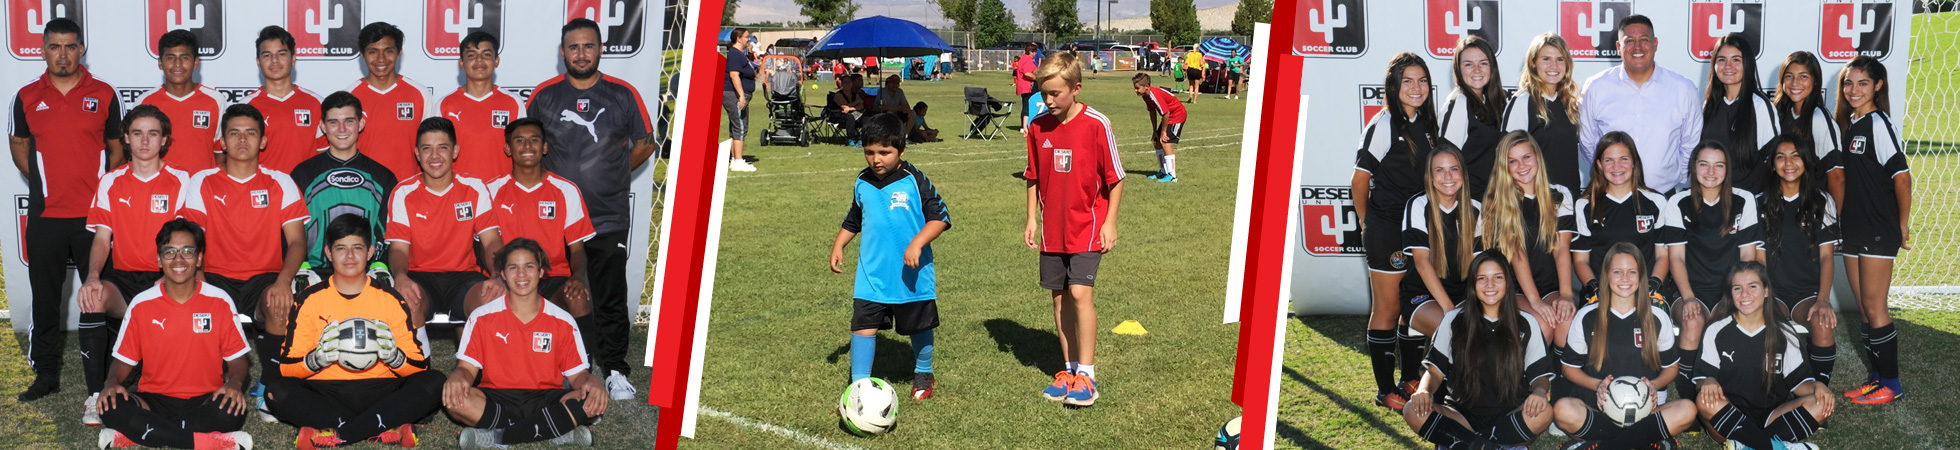 Desert United Soccer League Gallery Image 2